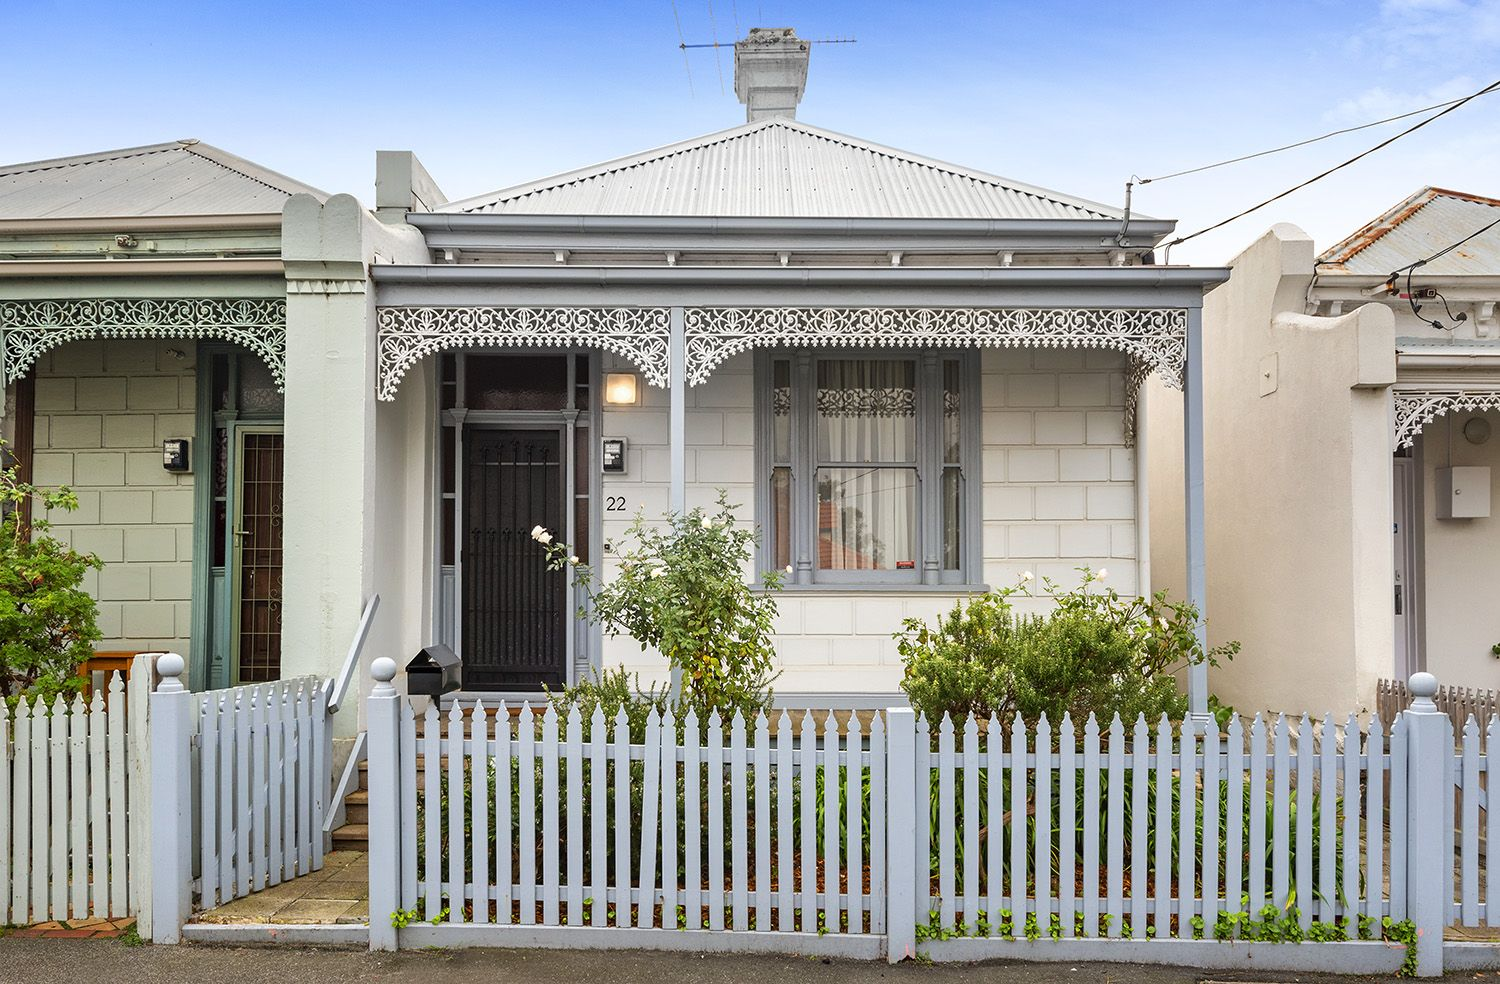 22 Wright Street, Clifton Hill VIC 3068, Image 0